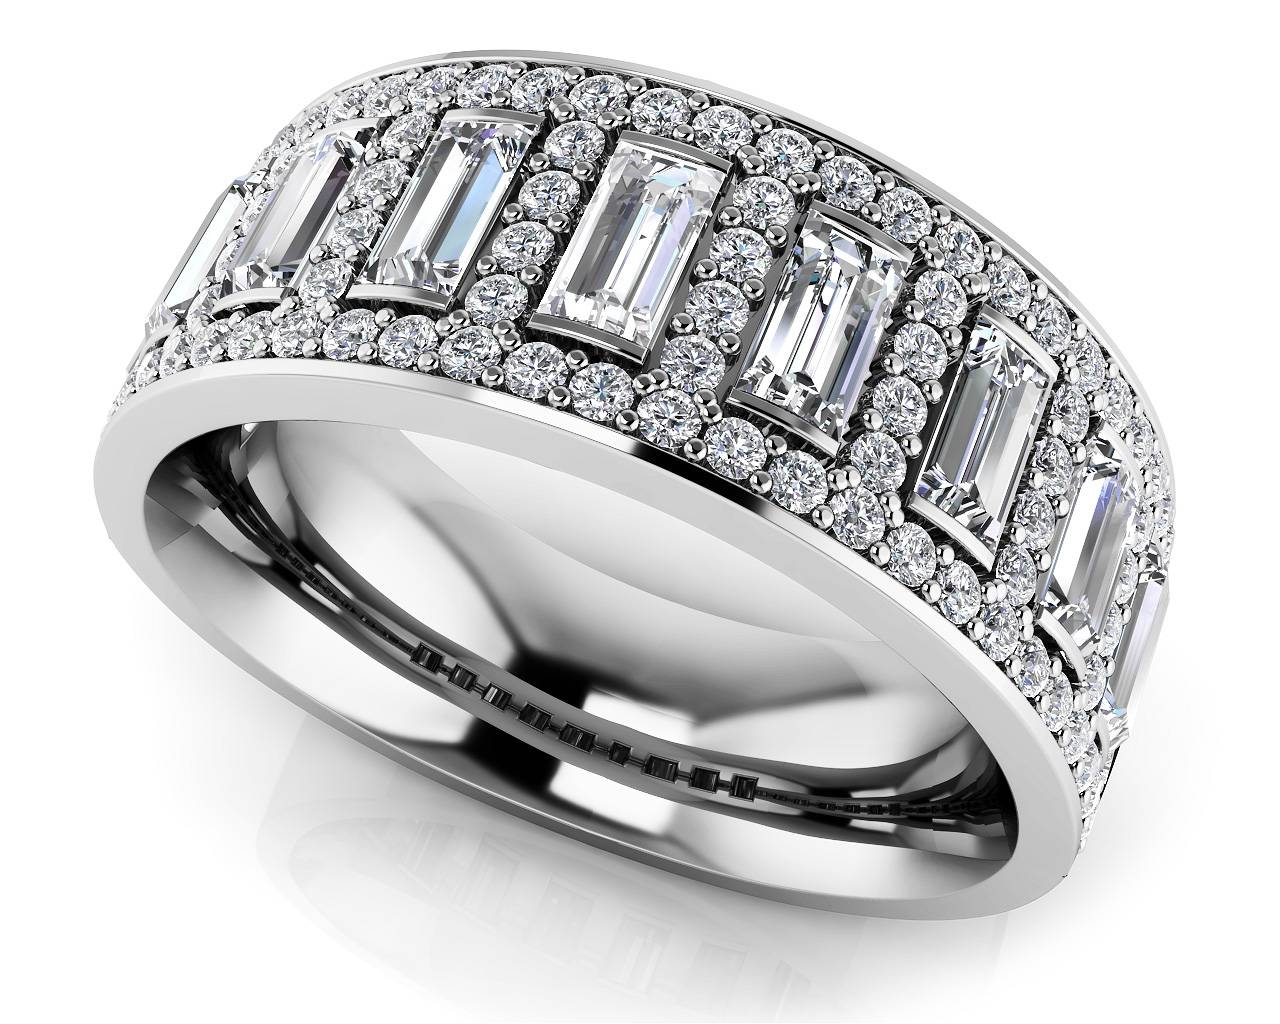 Design Your Own Diamond Anniversary Ring & Eternity Ring Regarding Latest Wide Band Anniversary Rings (View 8 of 25)